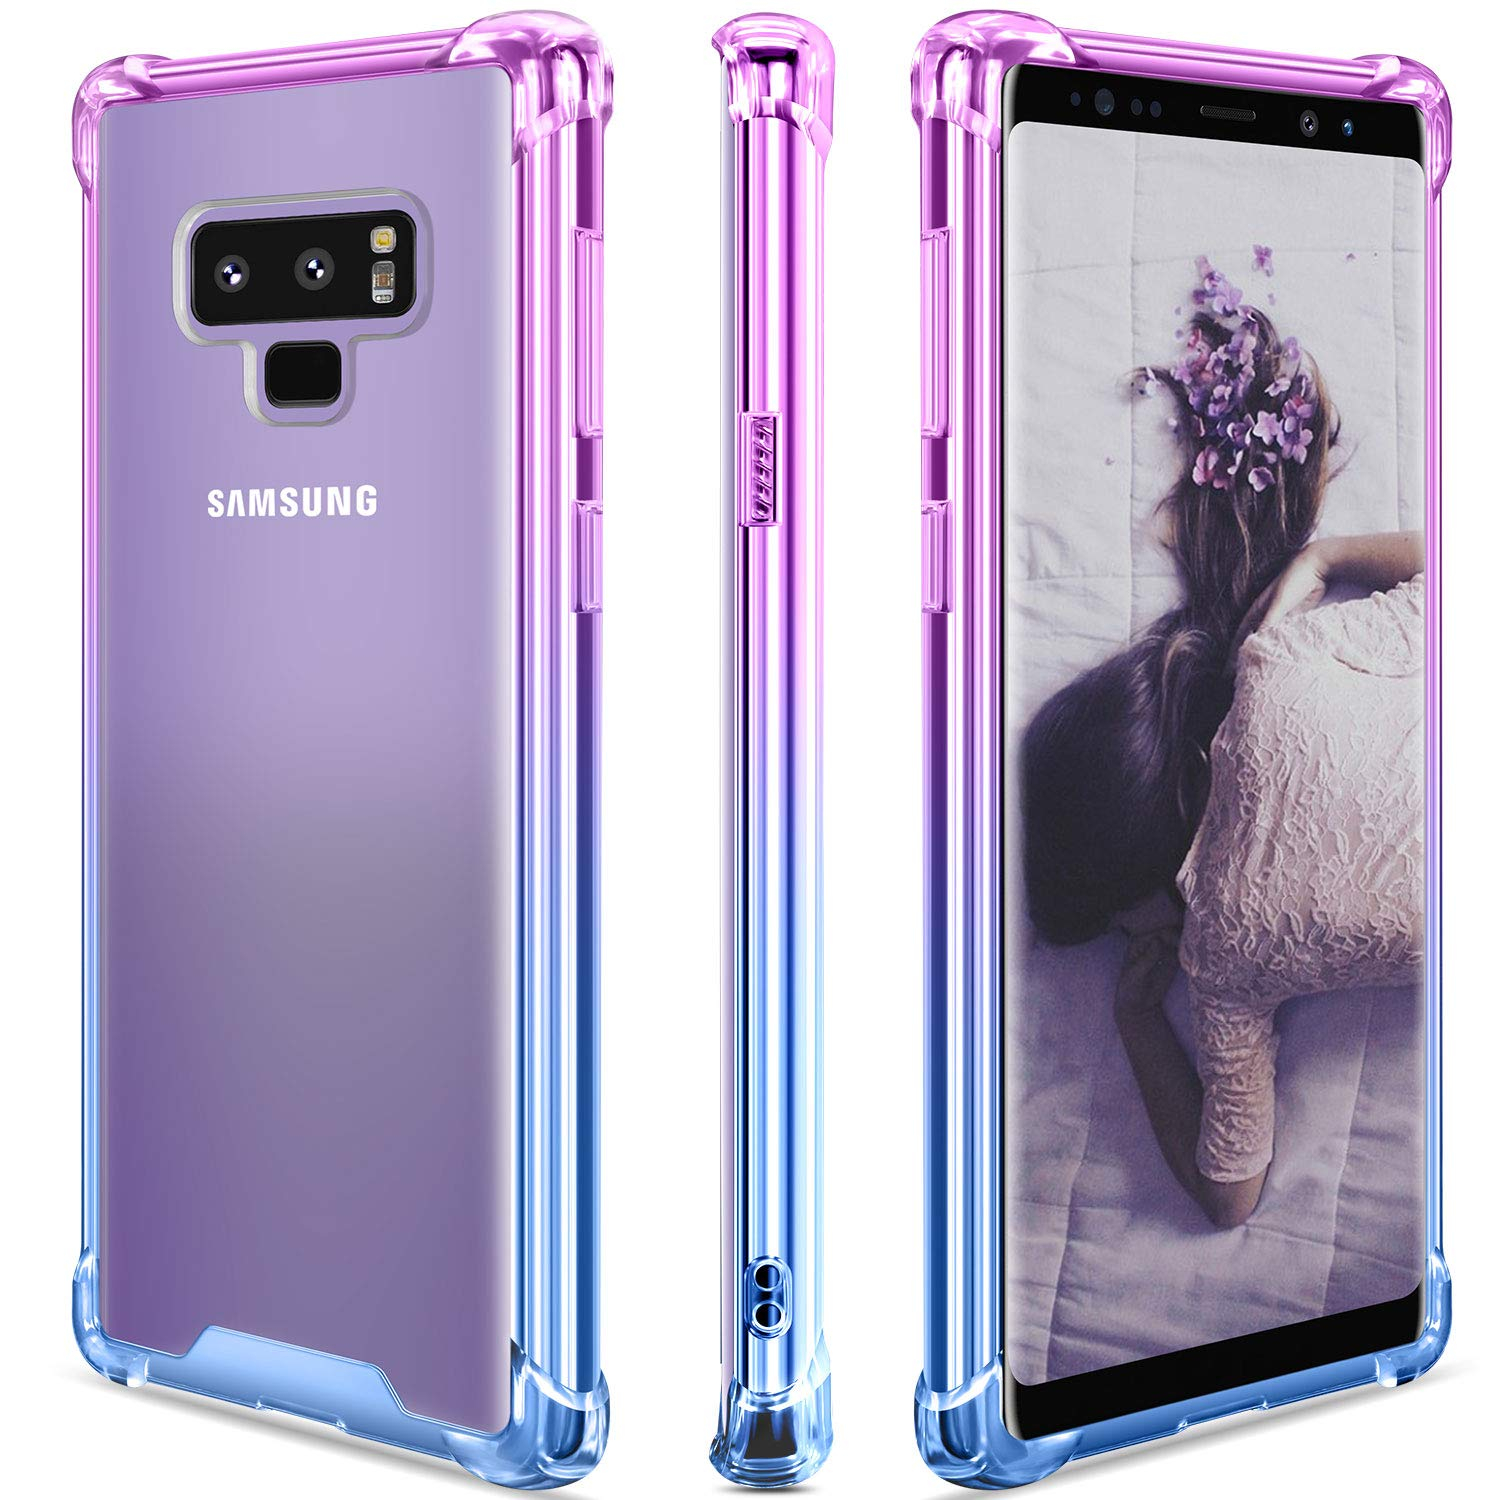 Samsung Galaxy Note 9 Case,Clear Note 9 Case Shockproof TPU Bumper Cases Non Slip Scratch Resistant PC Hard Back Protective Case Cover for Galaxy Note ...